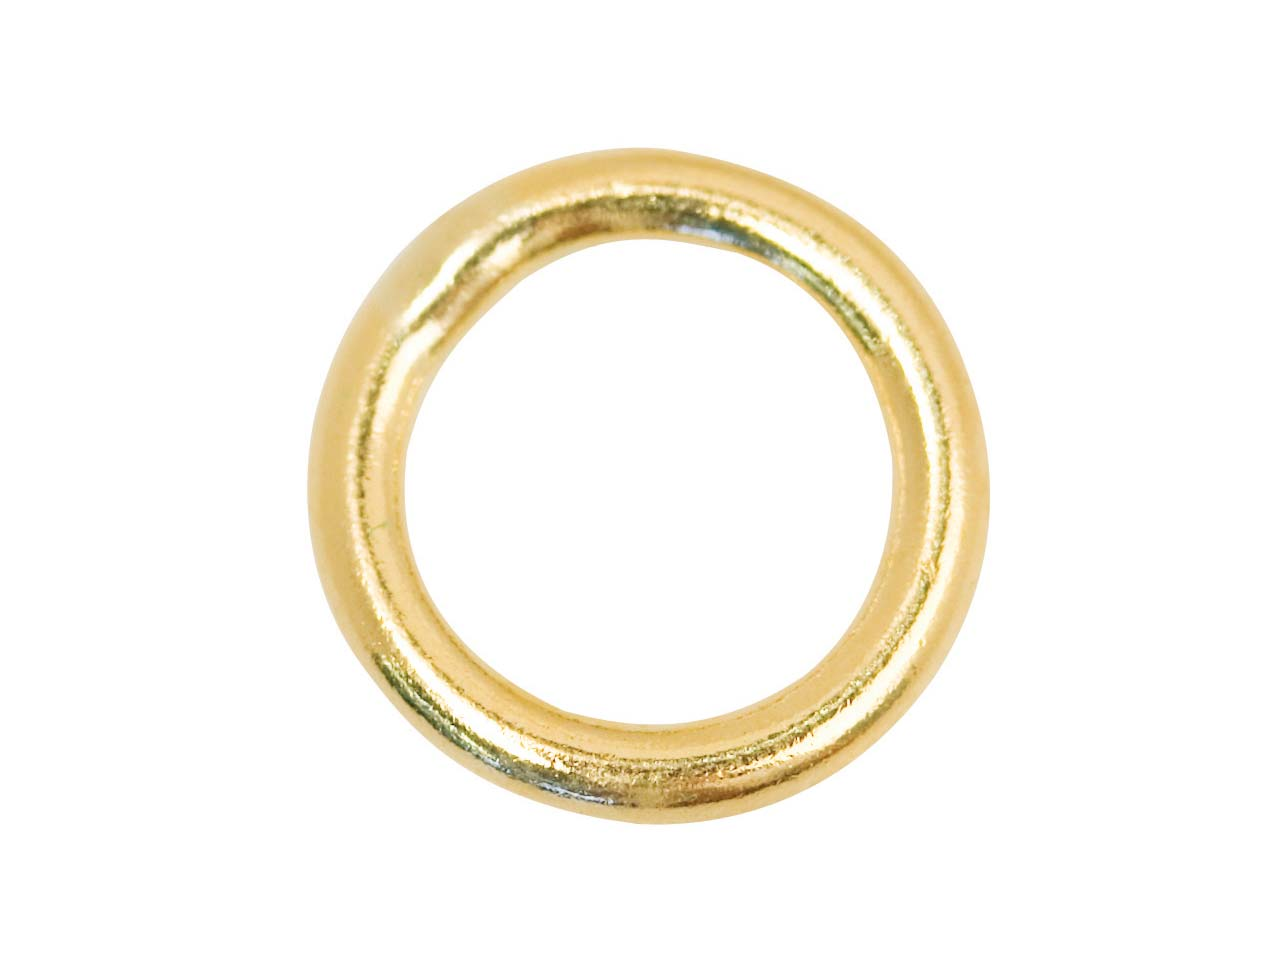 9ct Yellow 4mm Closed J/rings,     Pack of 4, 4mm Diameter X 0.6mm    Round Wire